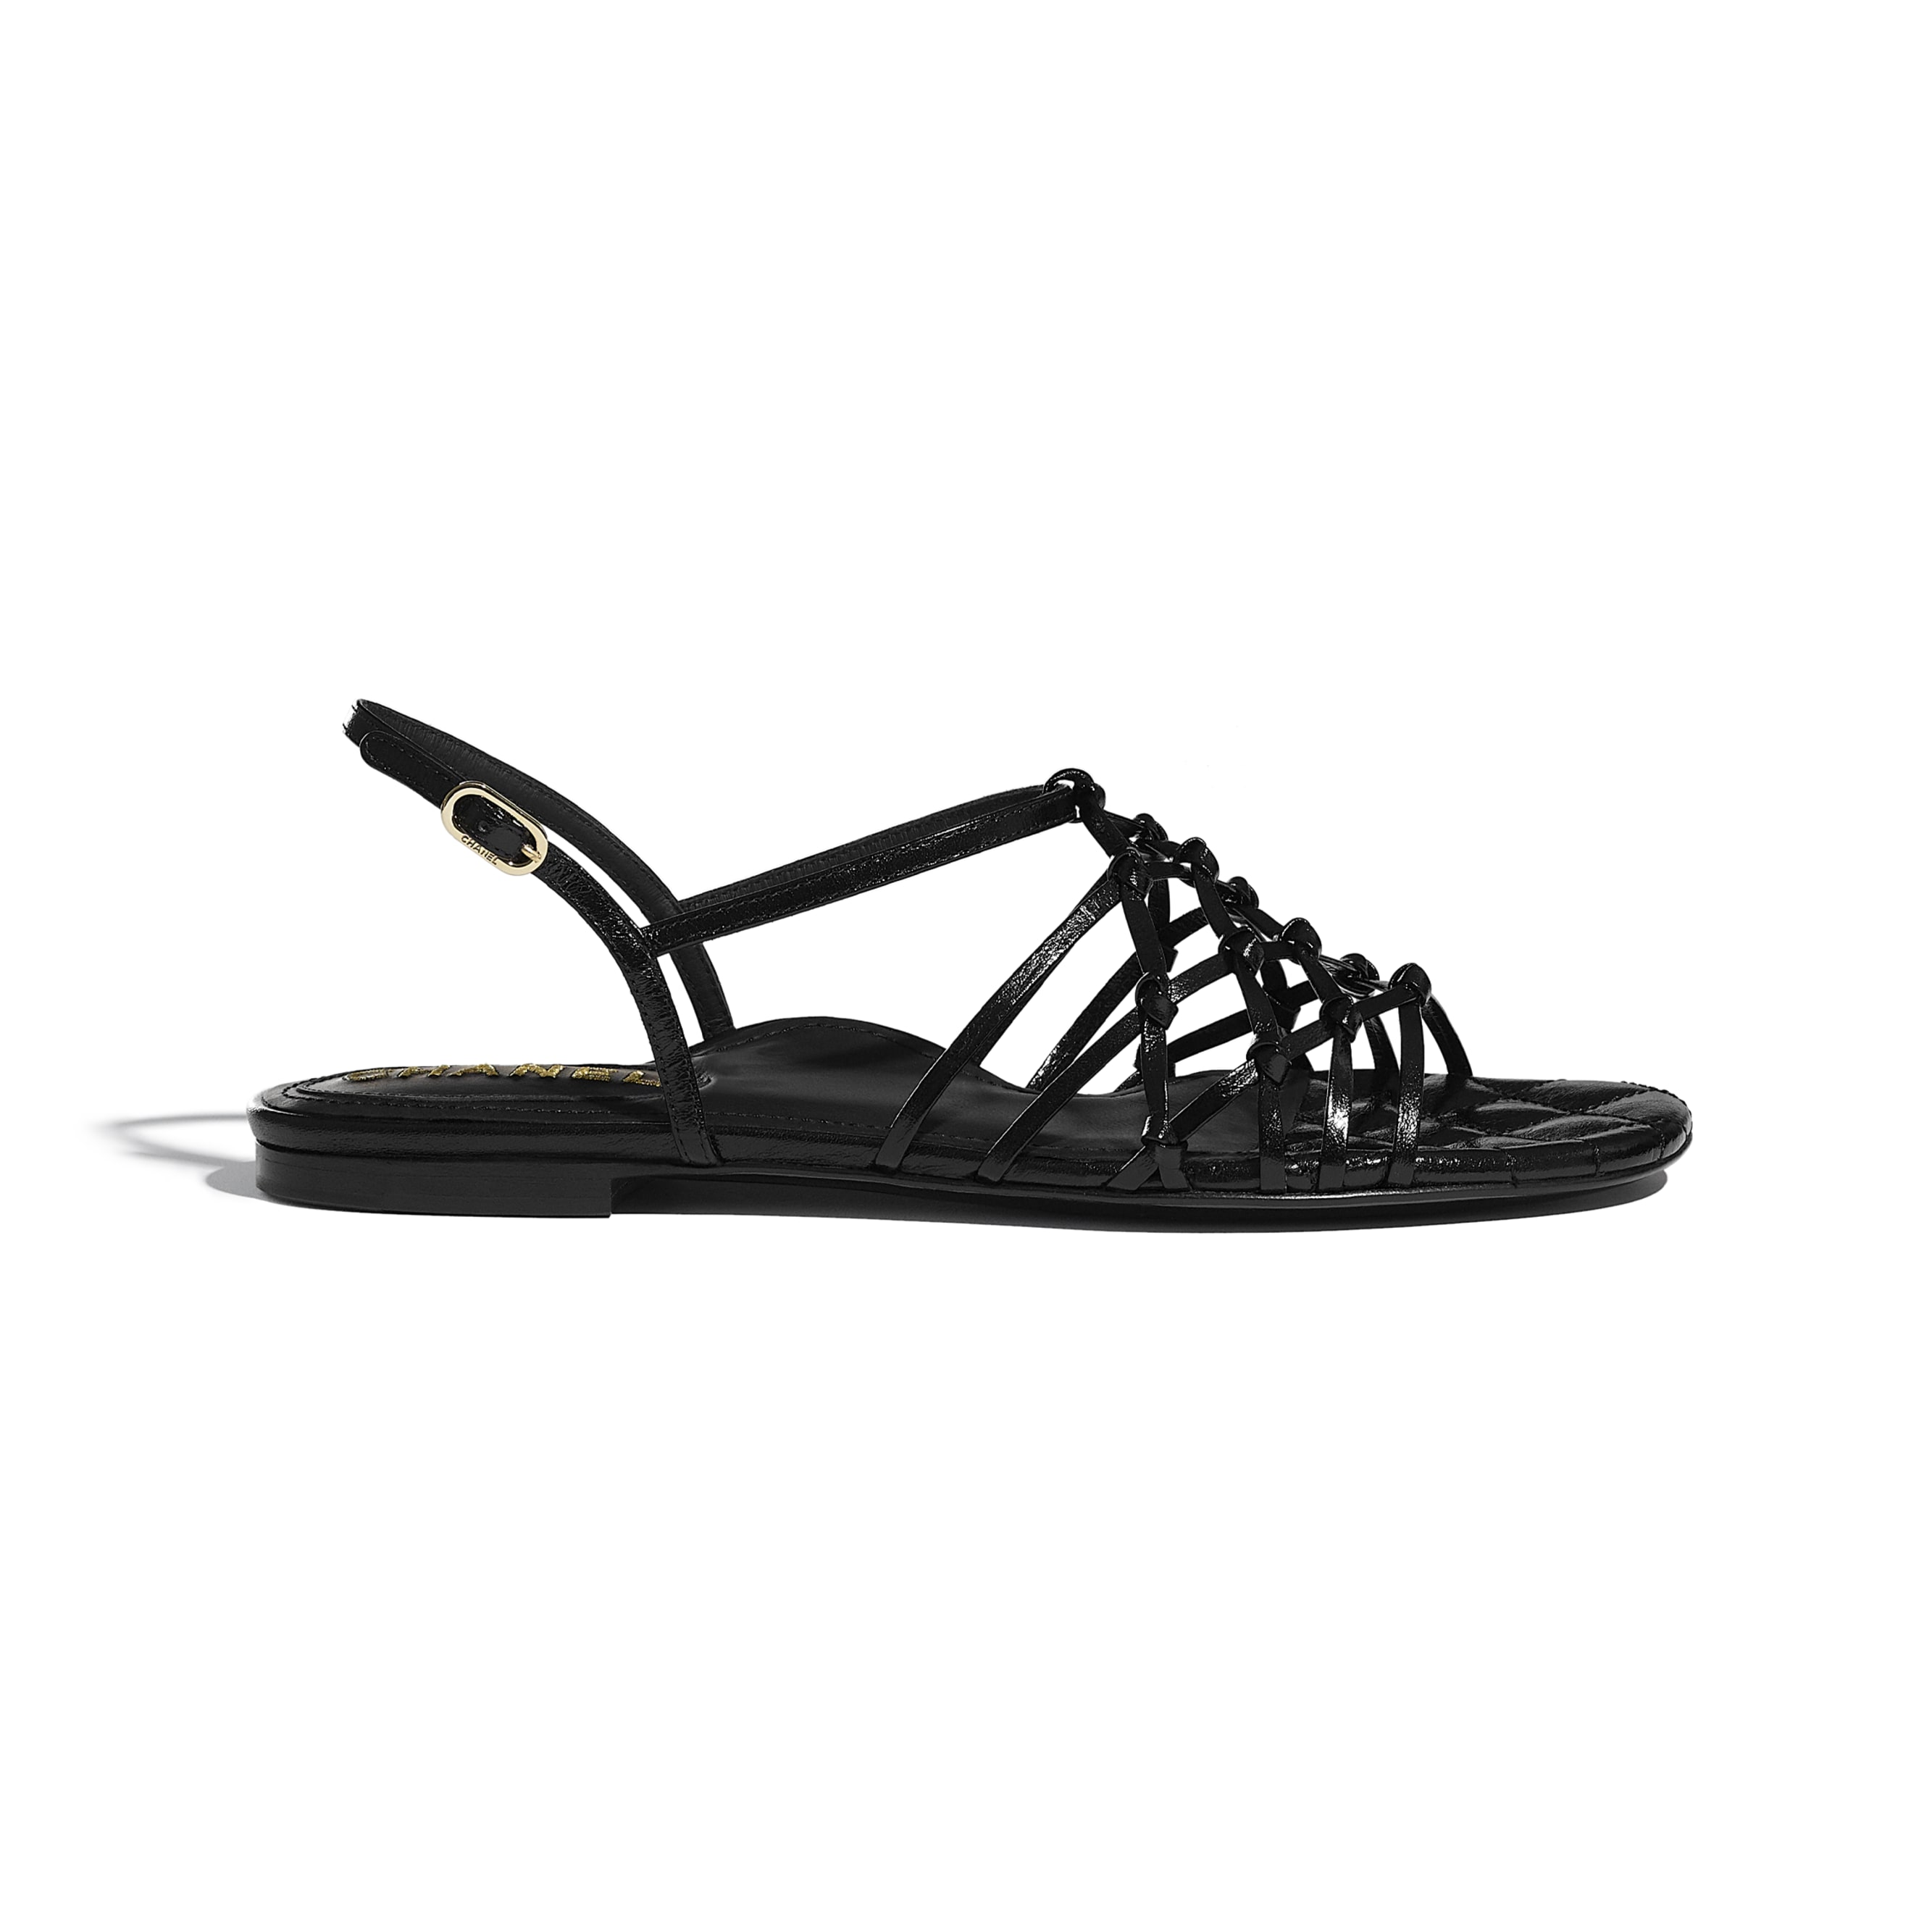 Sandals - Black - Iridescent Calfskin - CHANEL - Default view - see standard sized version